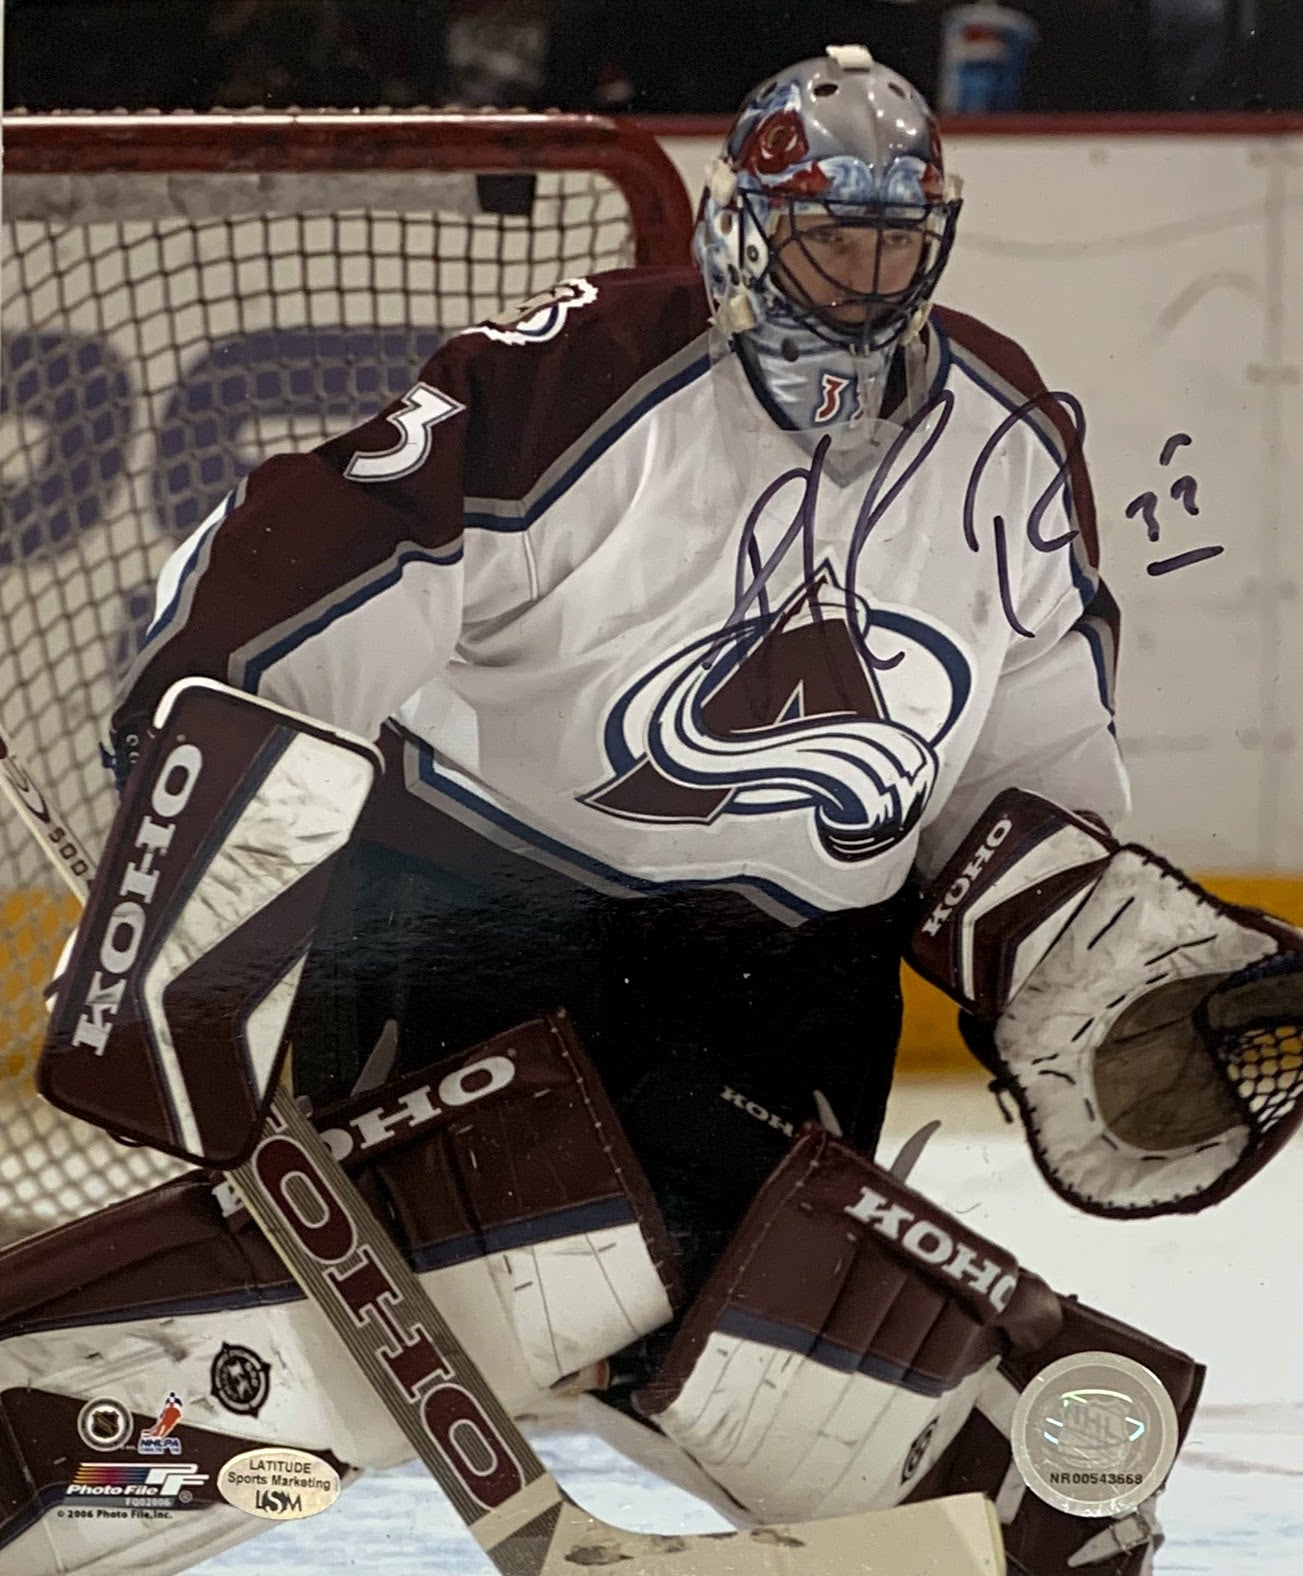 Patrick Roy Autographed Colorado Avalanche 8x10 Photo - Latitude Sports Marketing